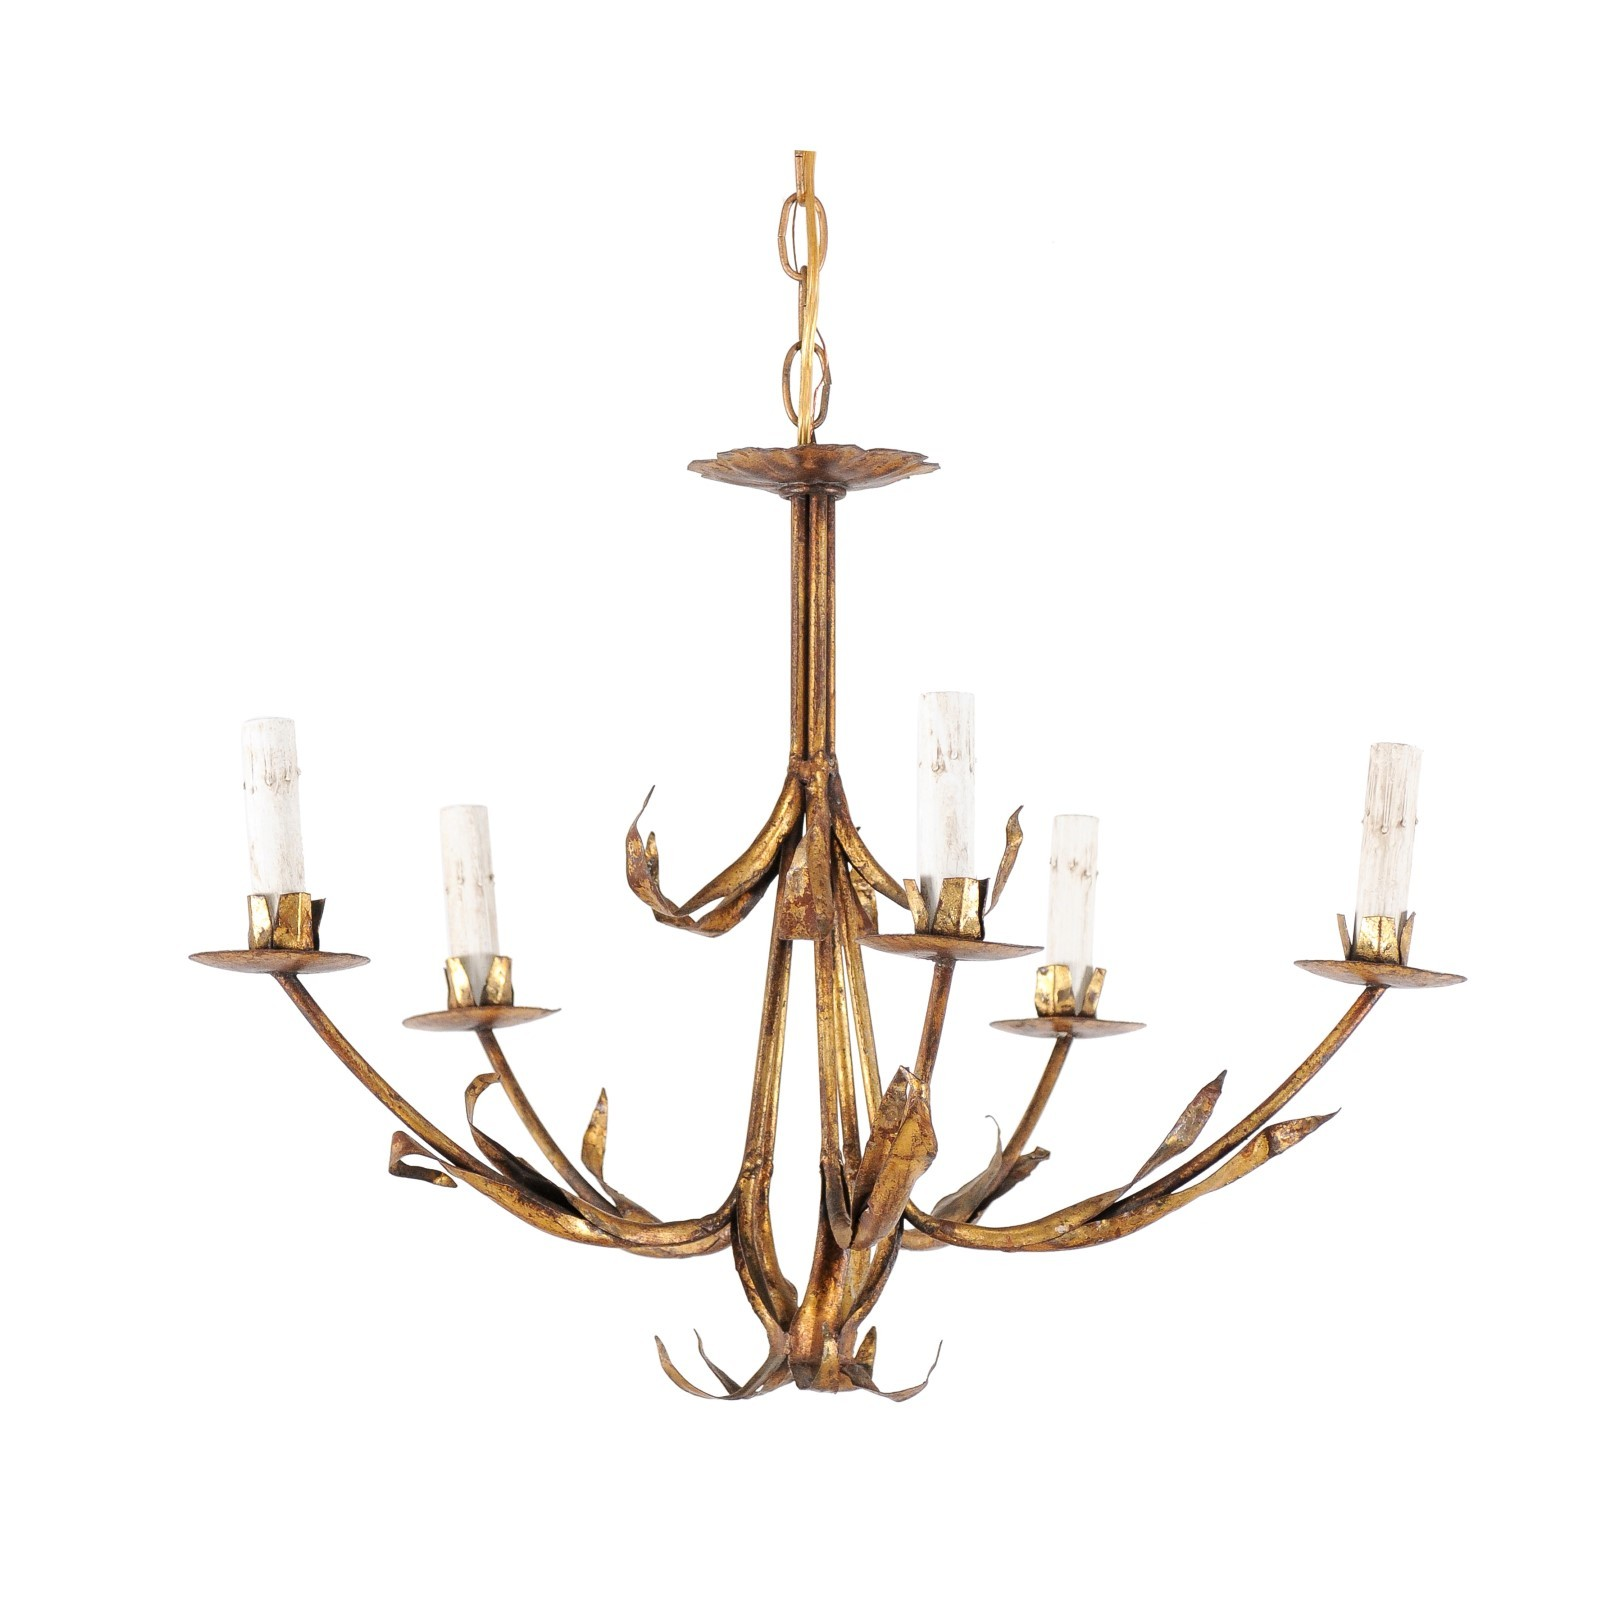 French Modern Foliage Inspired Chandelier